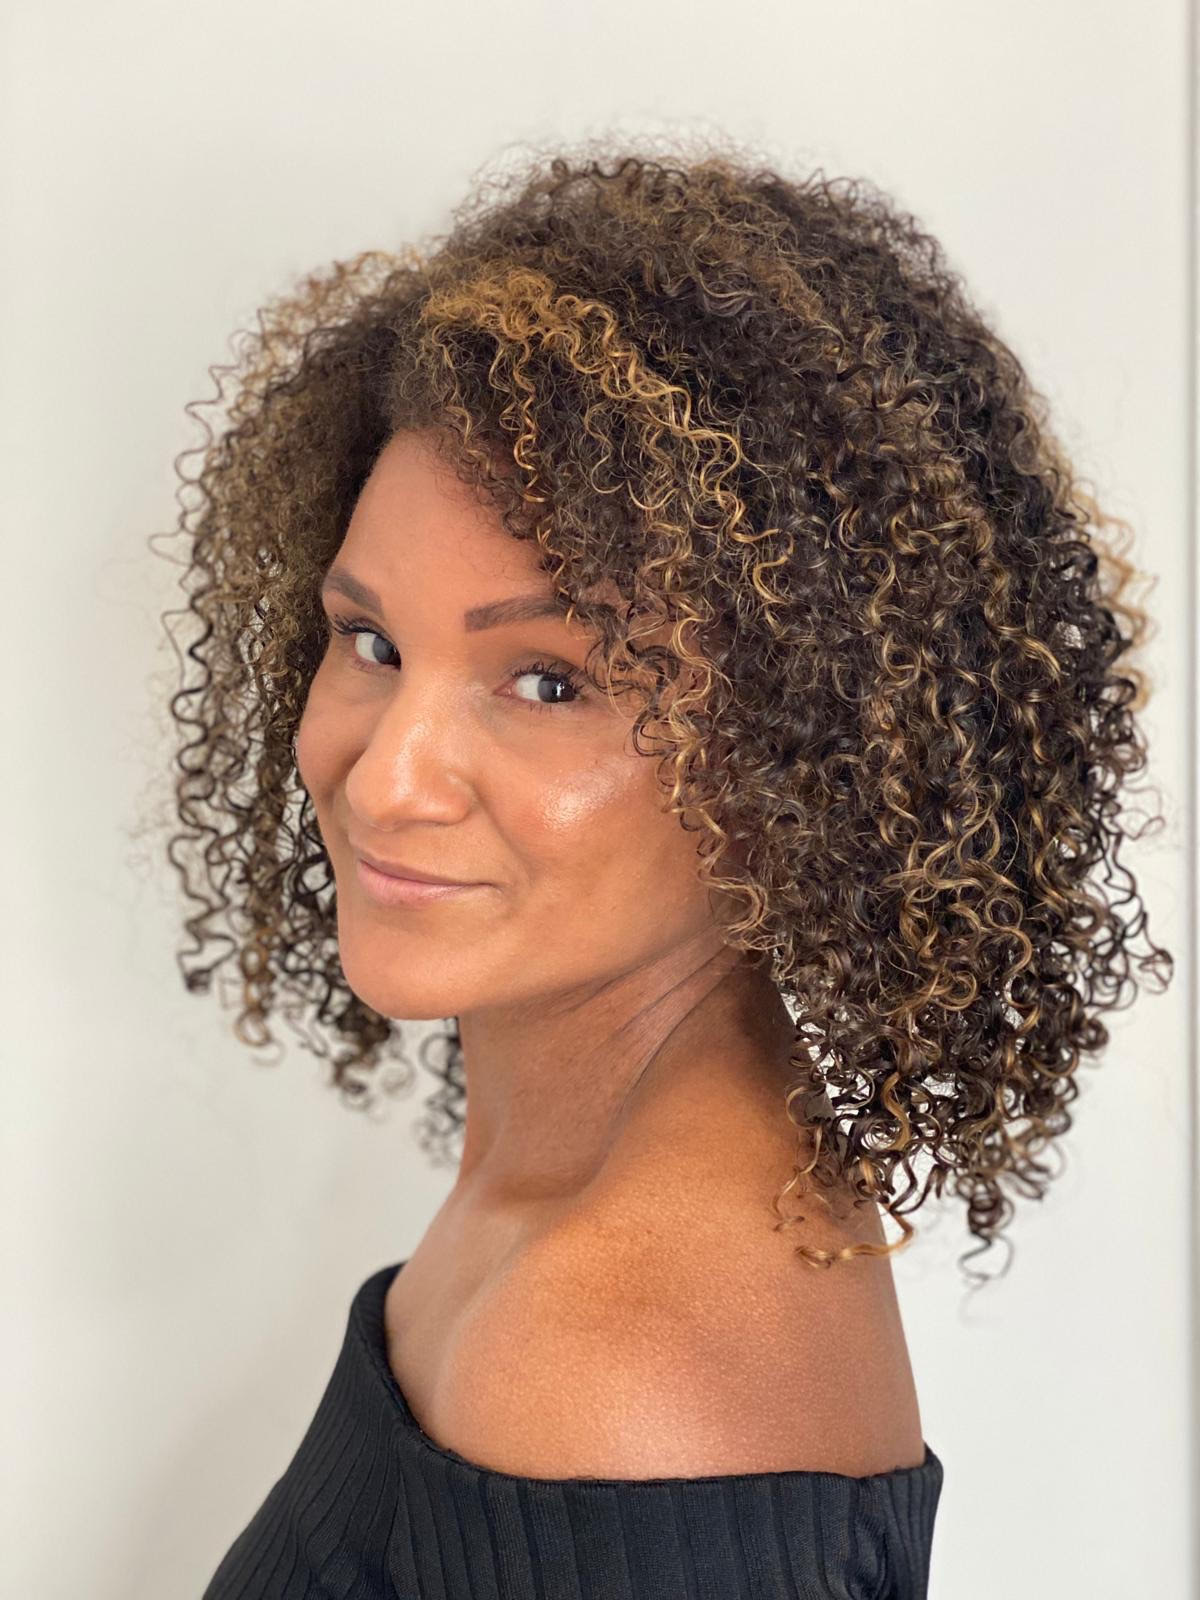 Amber Irving, curly hair client